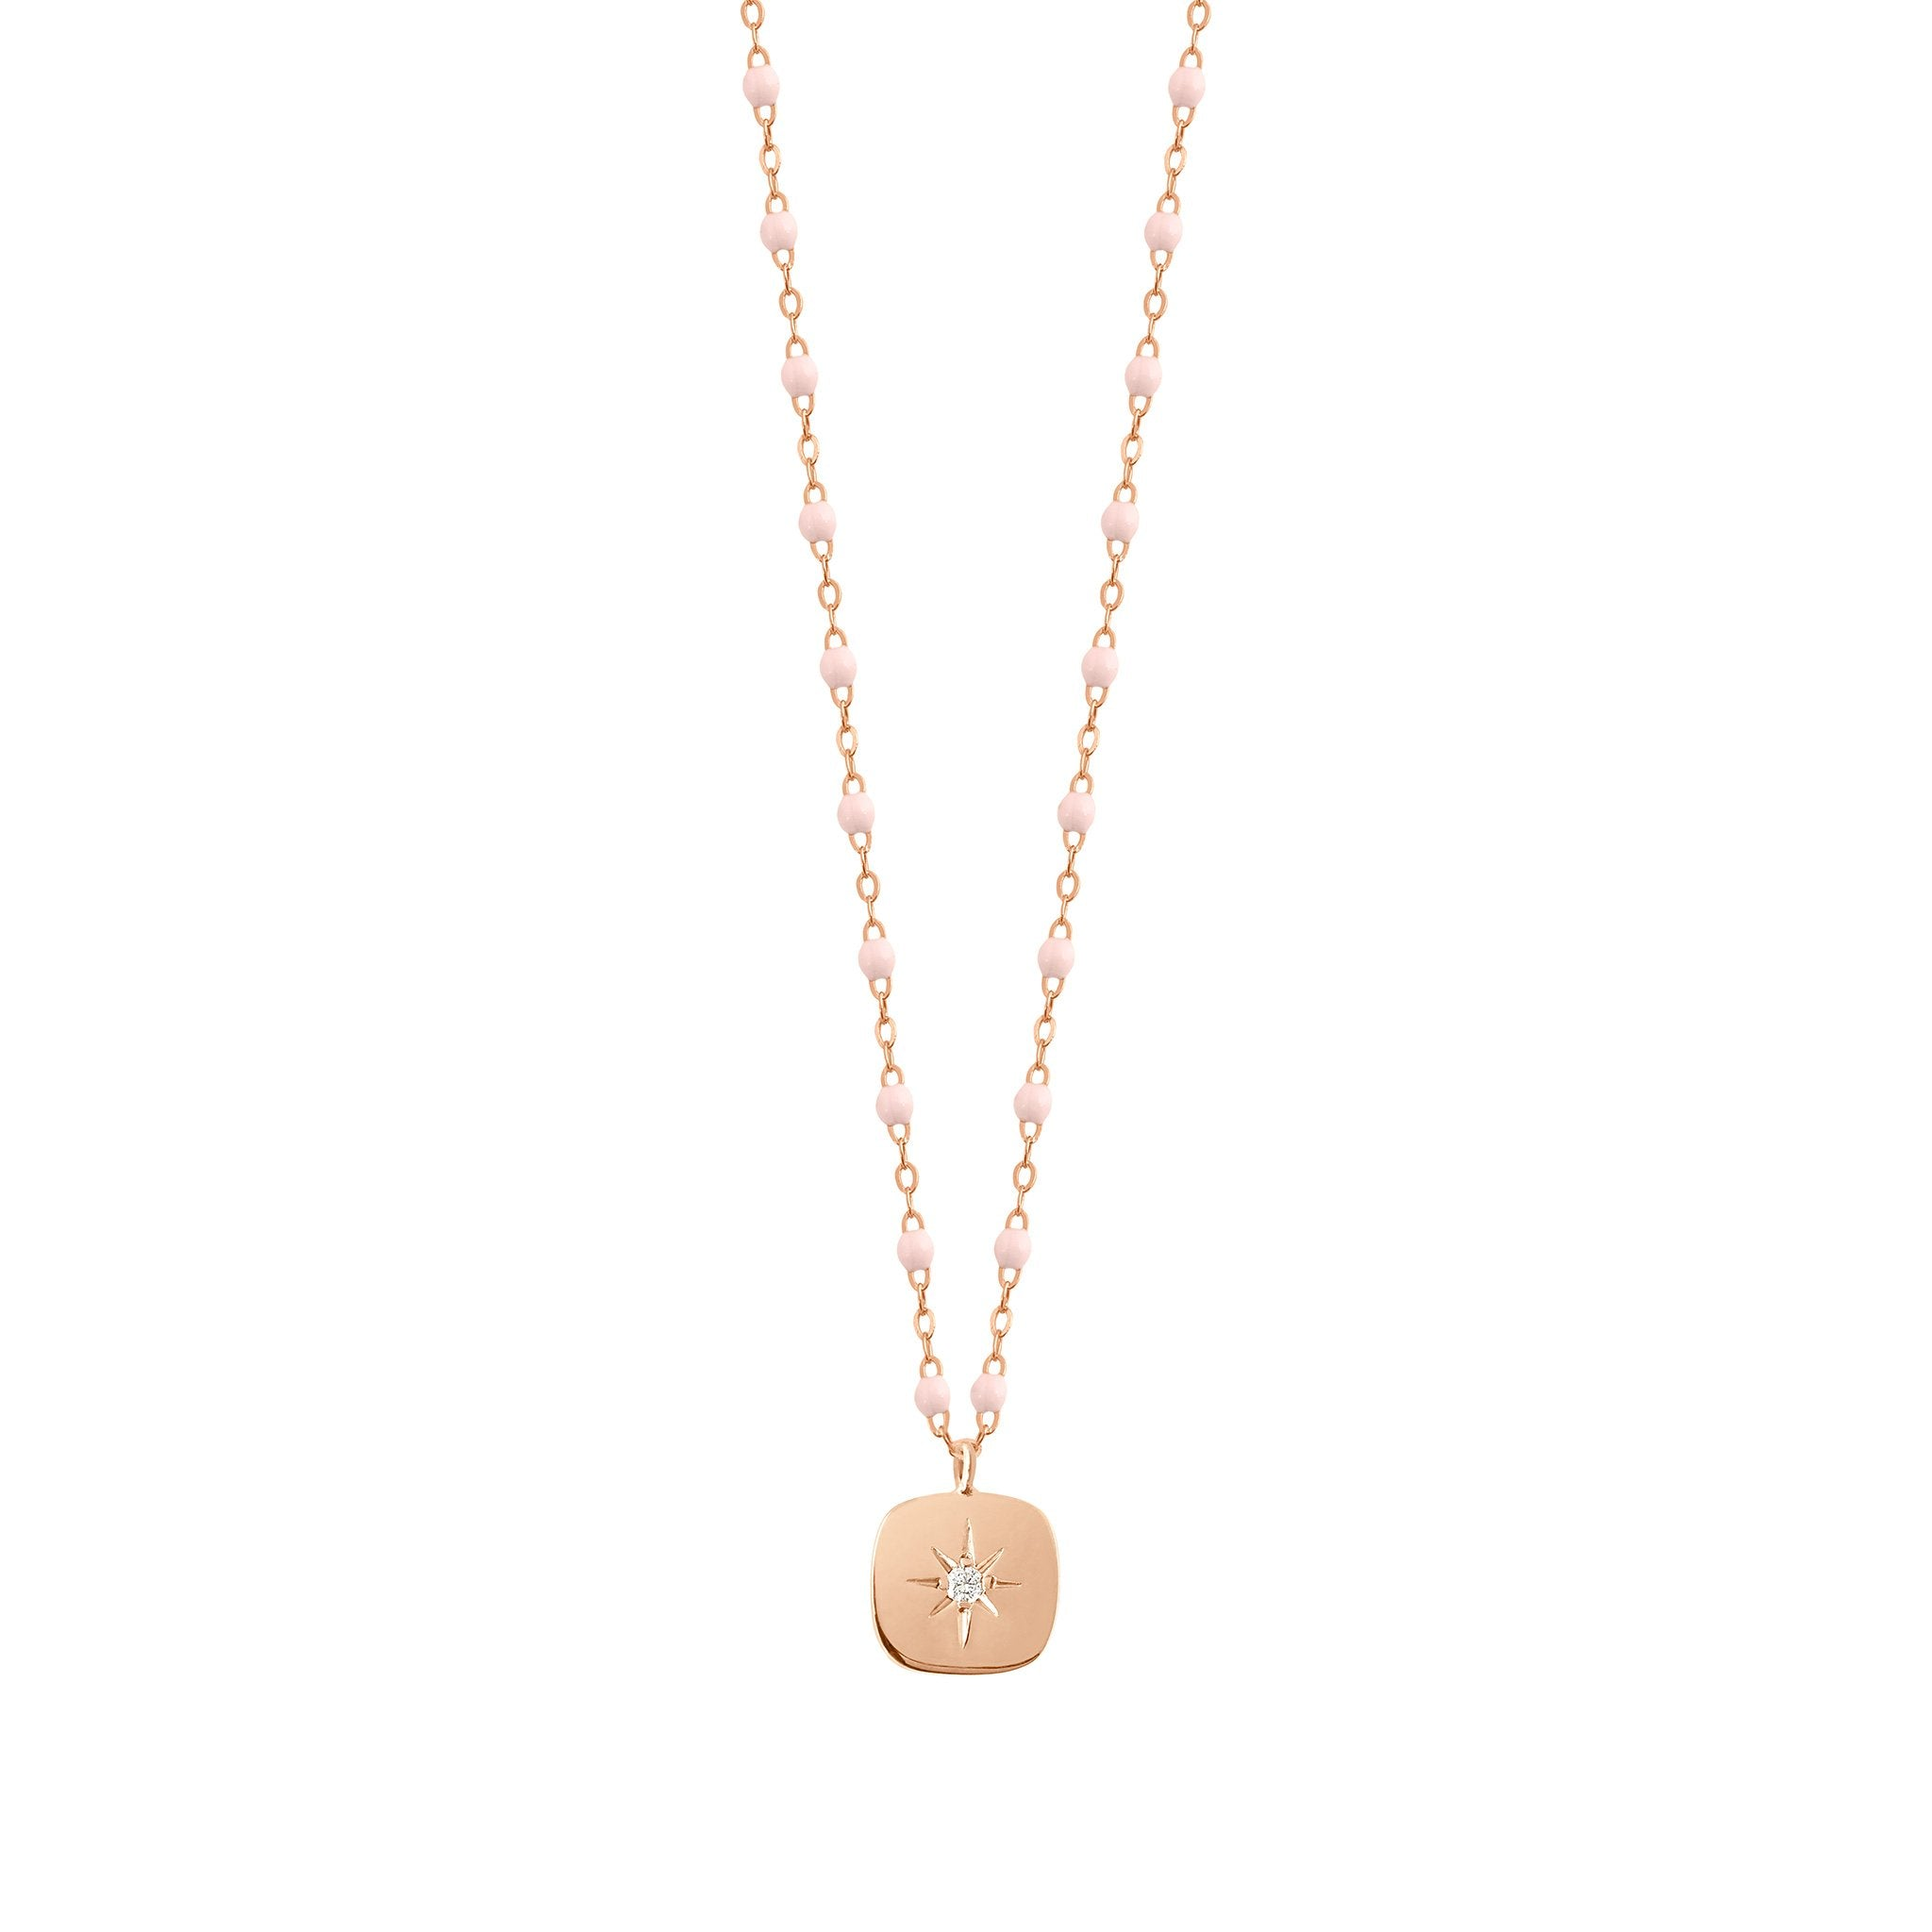 Gigi Clozeau - Miss Gigi Baby Pink diamond necklace, Rose Gold, 16.5""